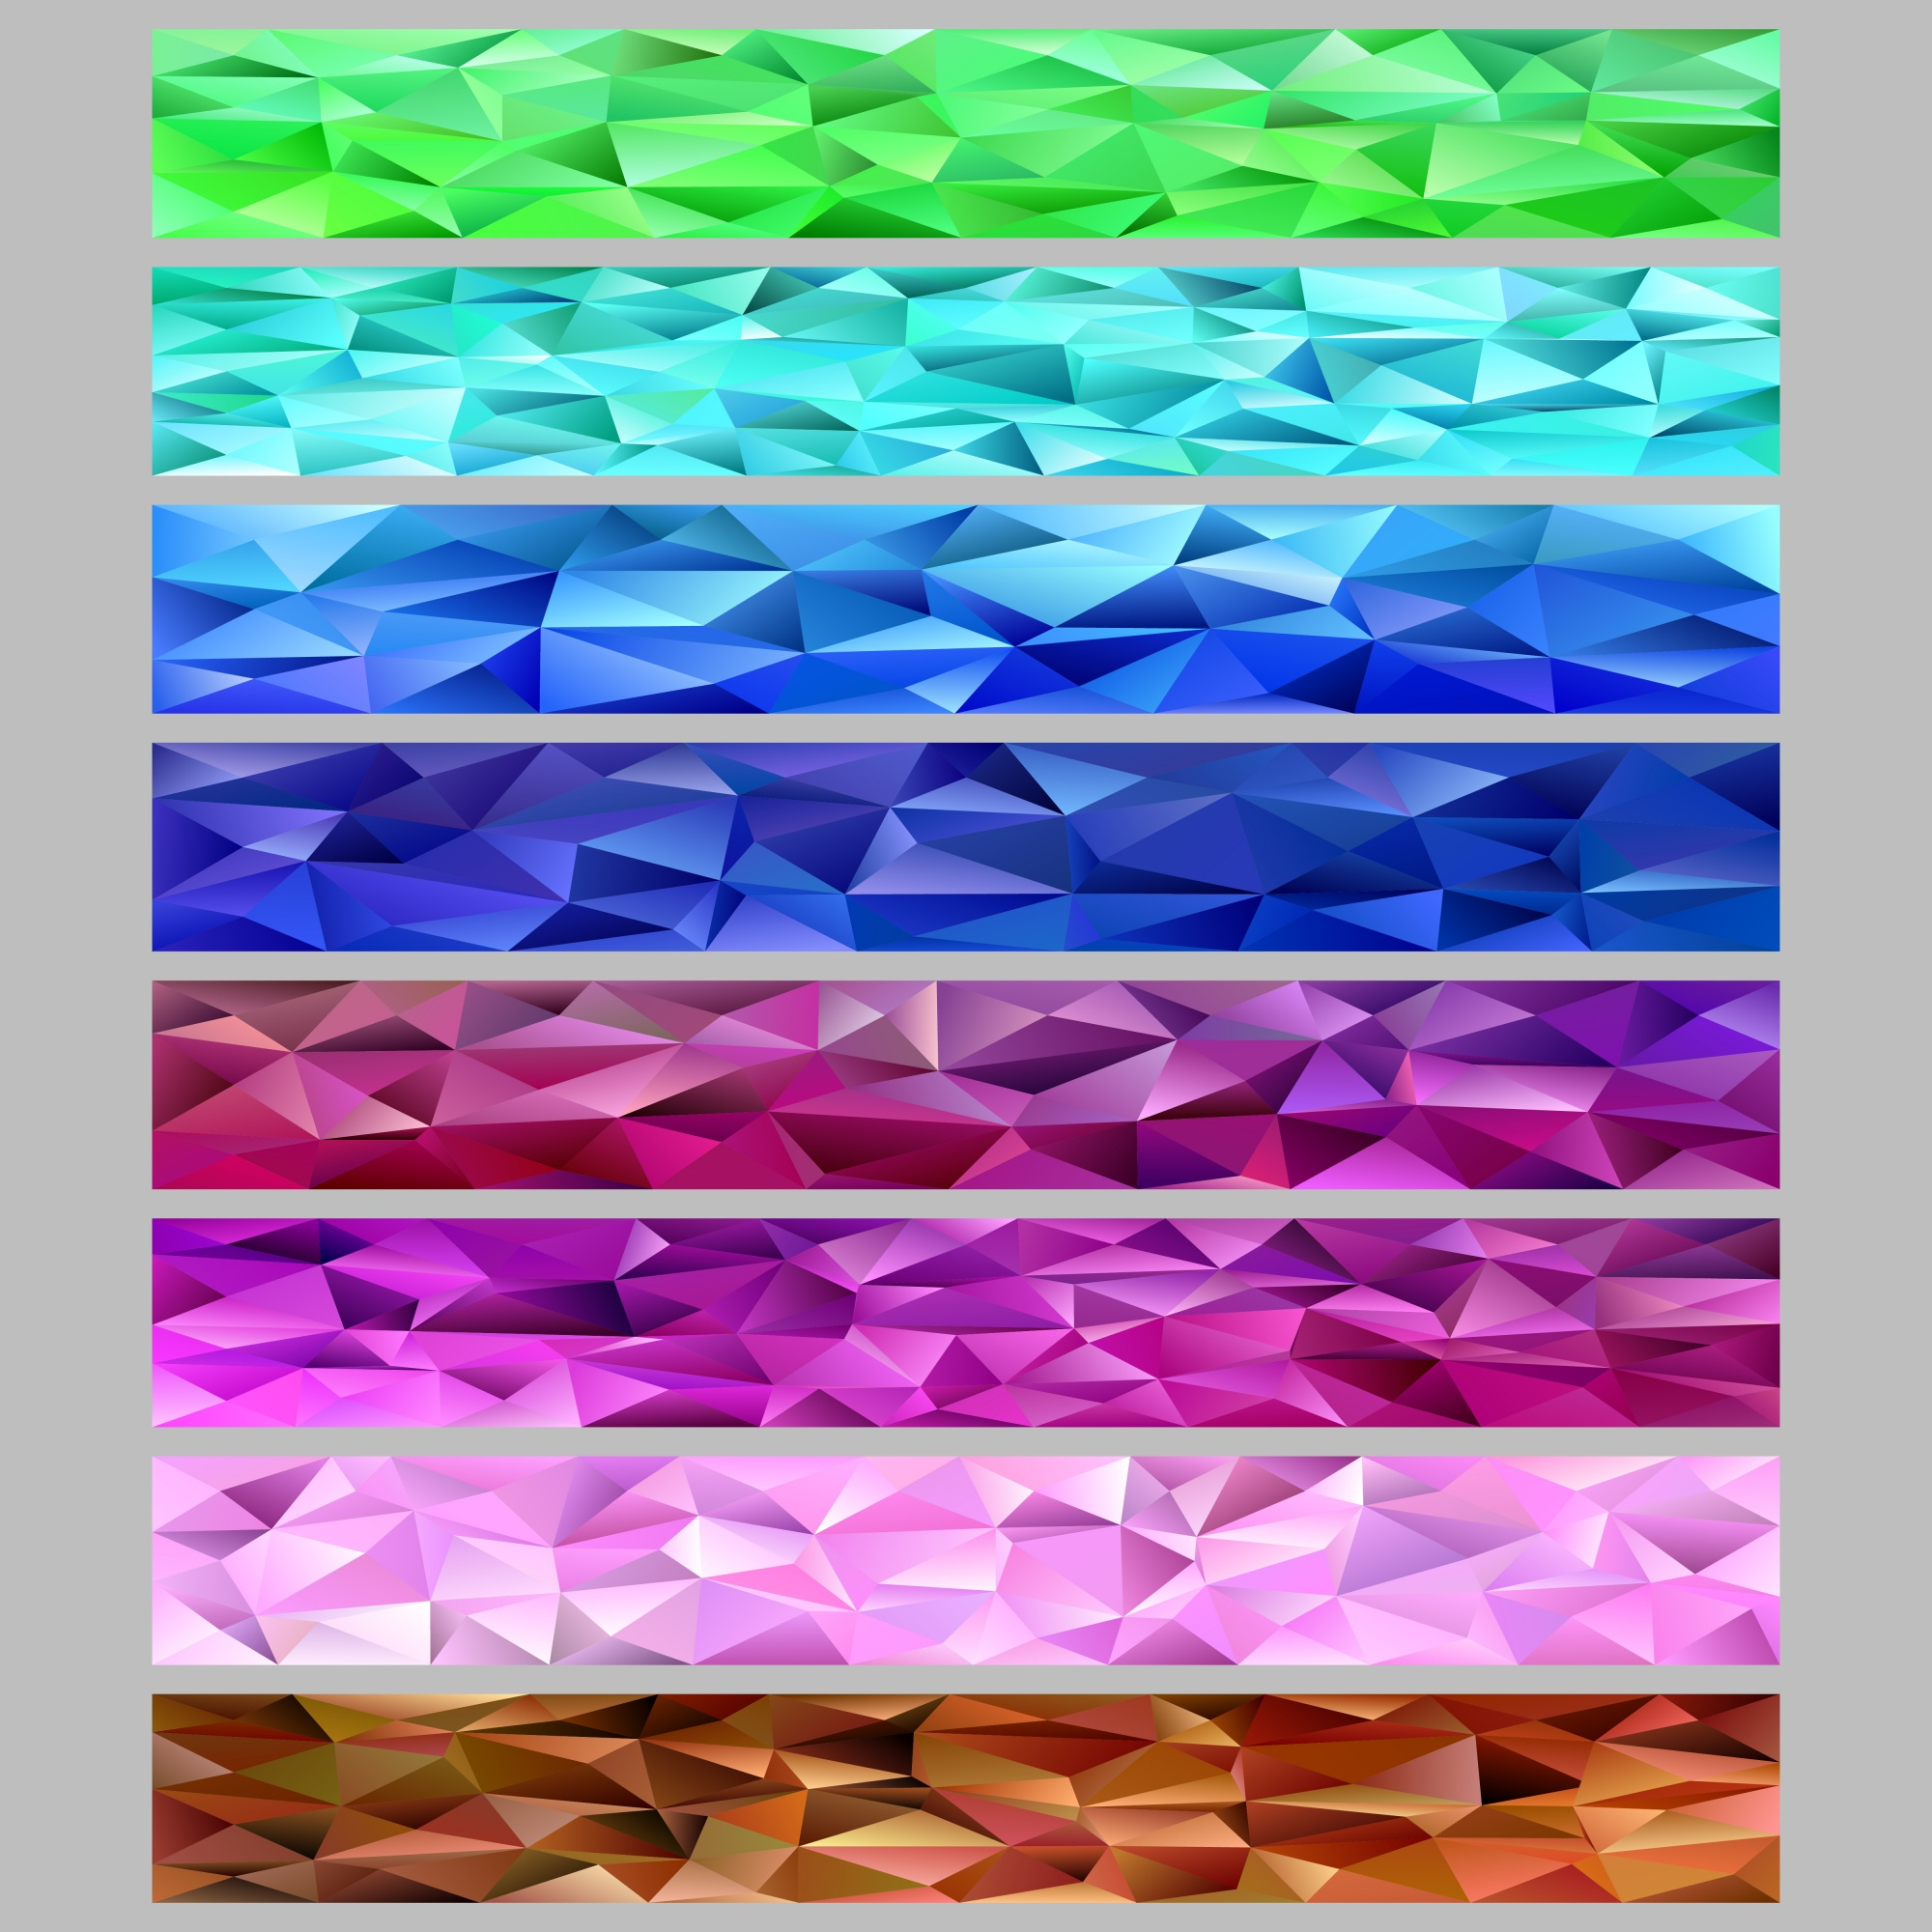 Gradient abstract triangle polygon pattern mosaic web banner background template set - graphic designs from colored triangles